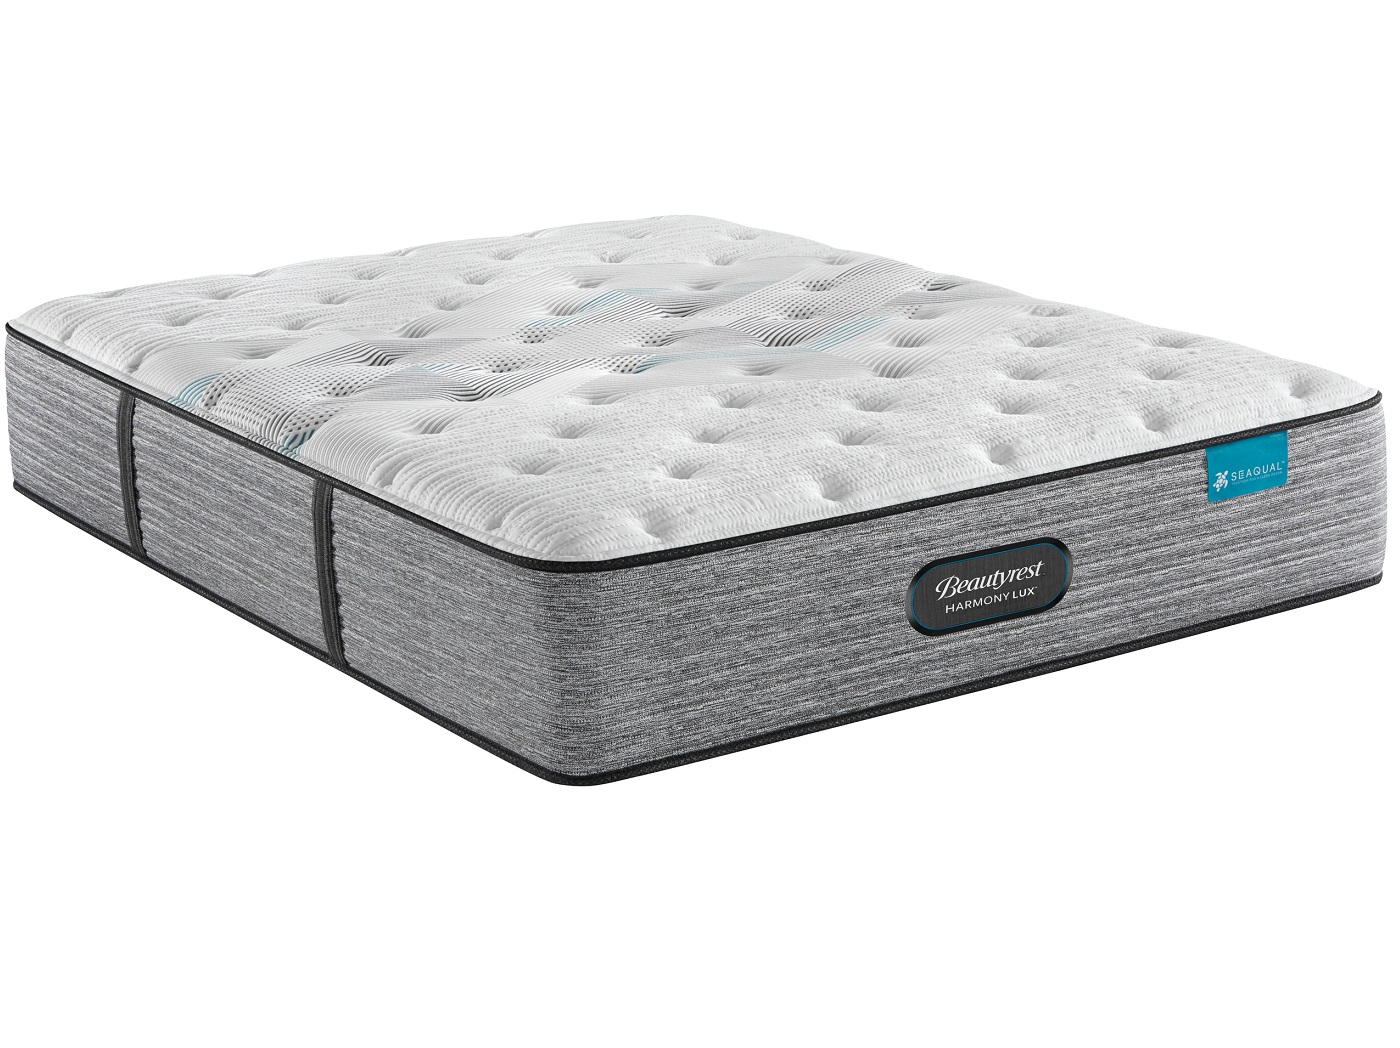 Beautyrest Harmony Lux Carbon Plush Queen Mattress